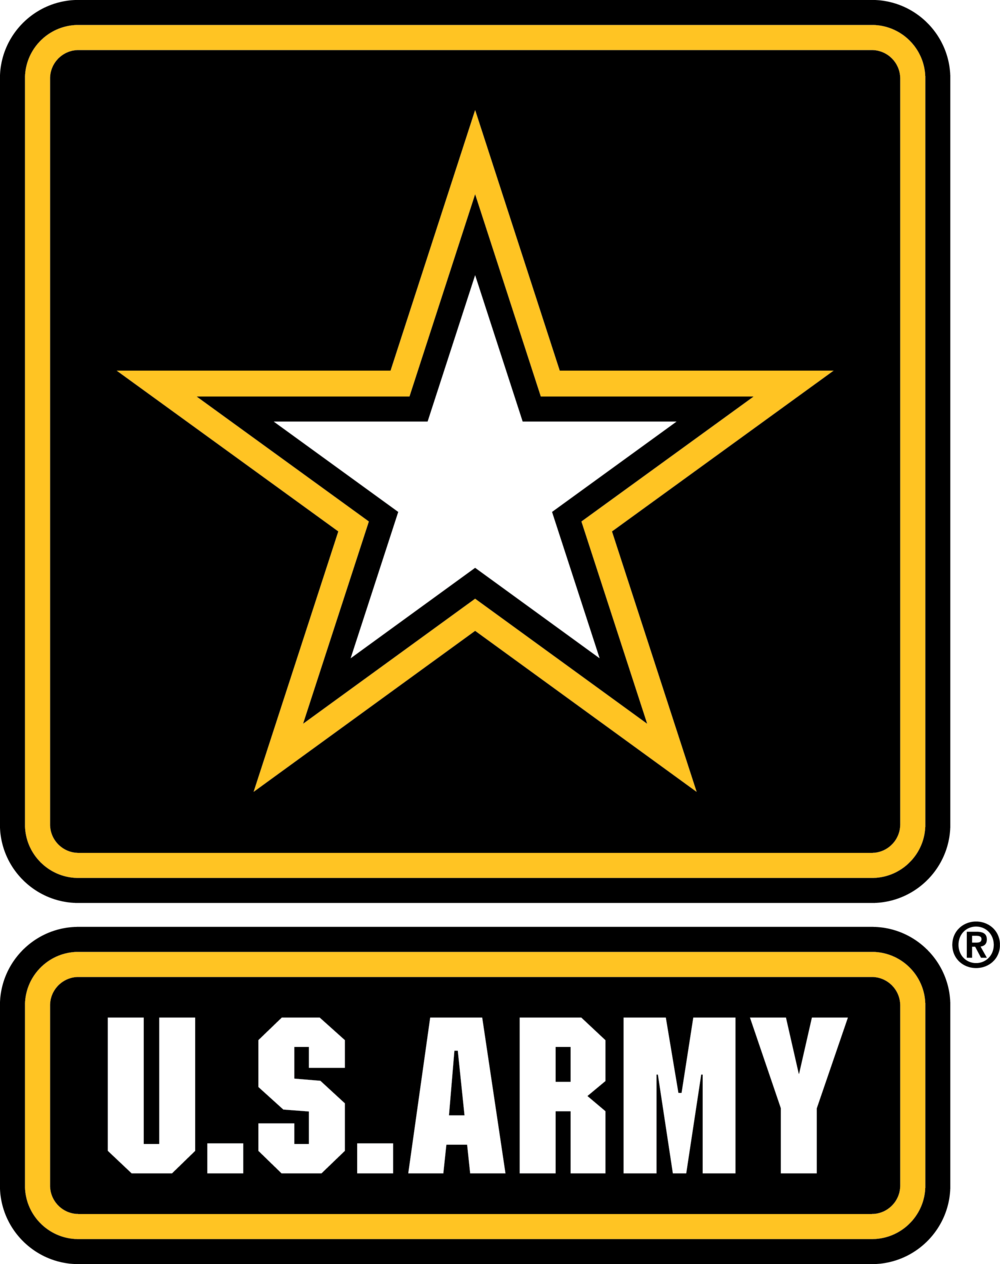 army_star_light_background.png